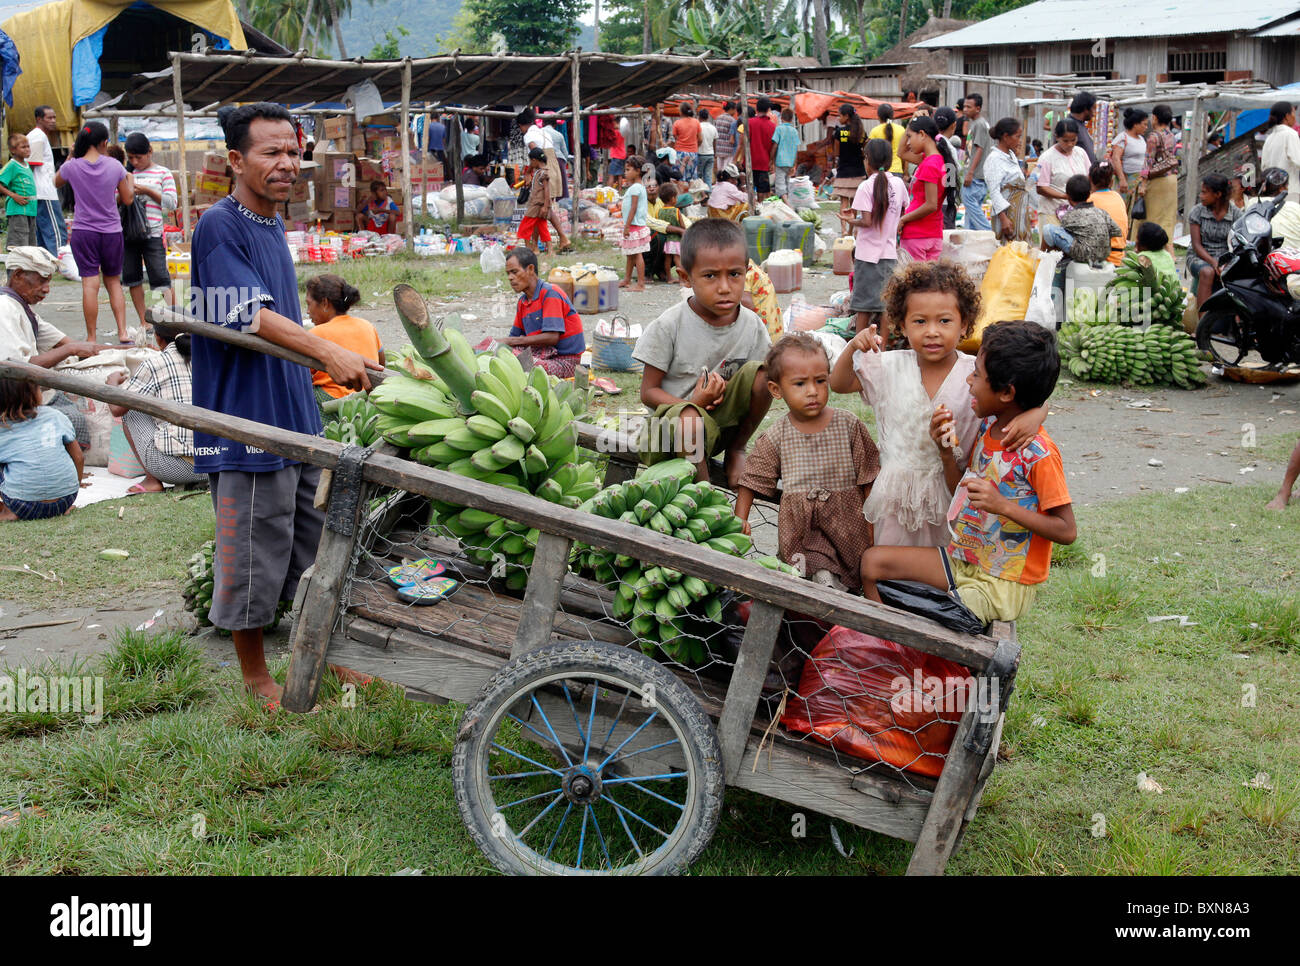 Timor Leste (East Timor): wheelbarrow with vegetables and children at a market in Salele - Stock Image